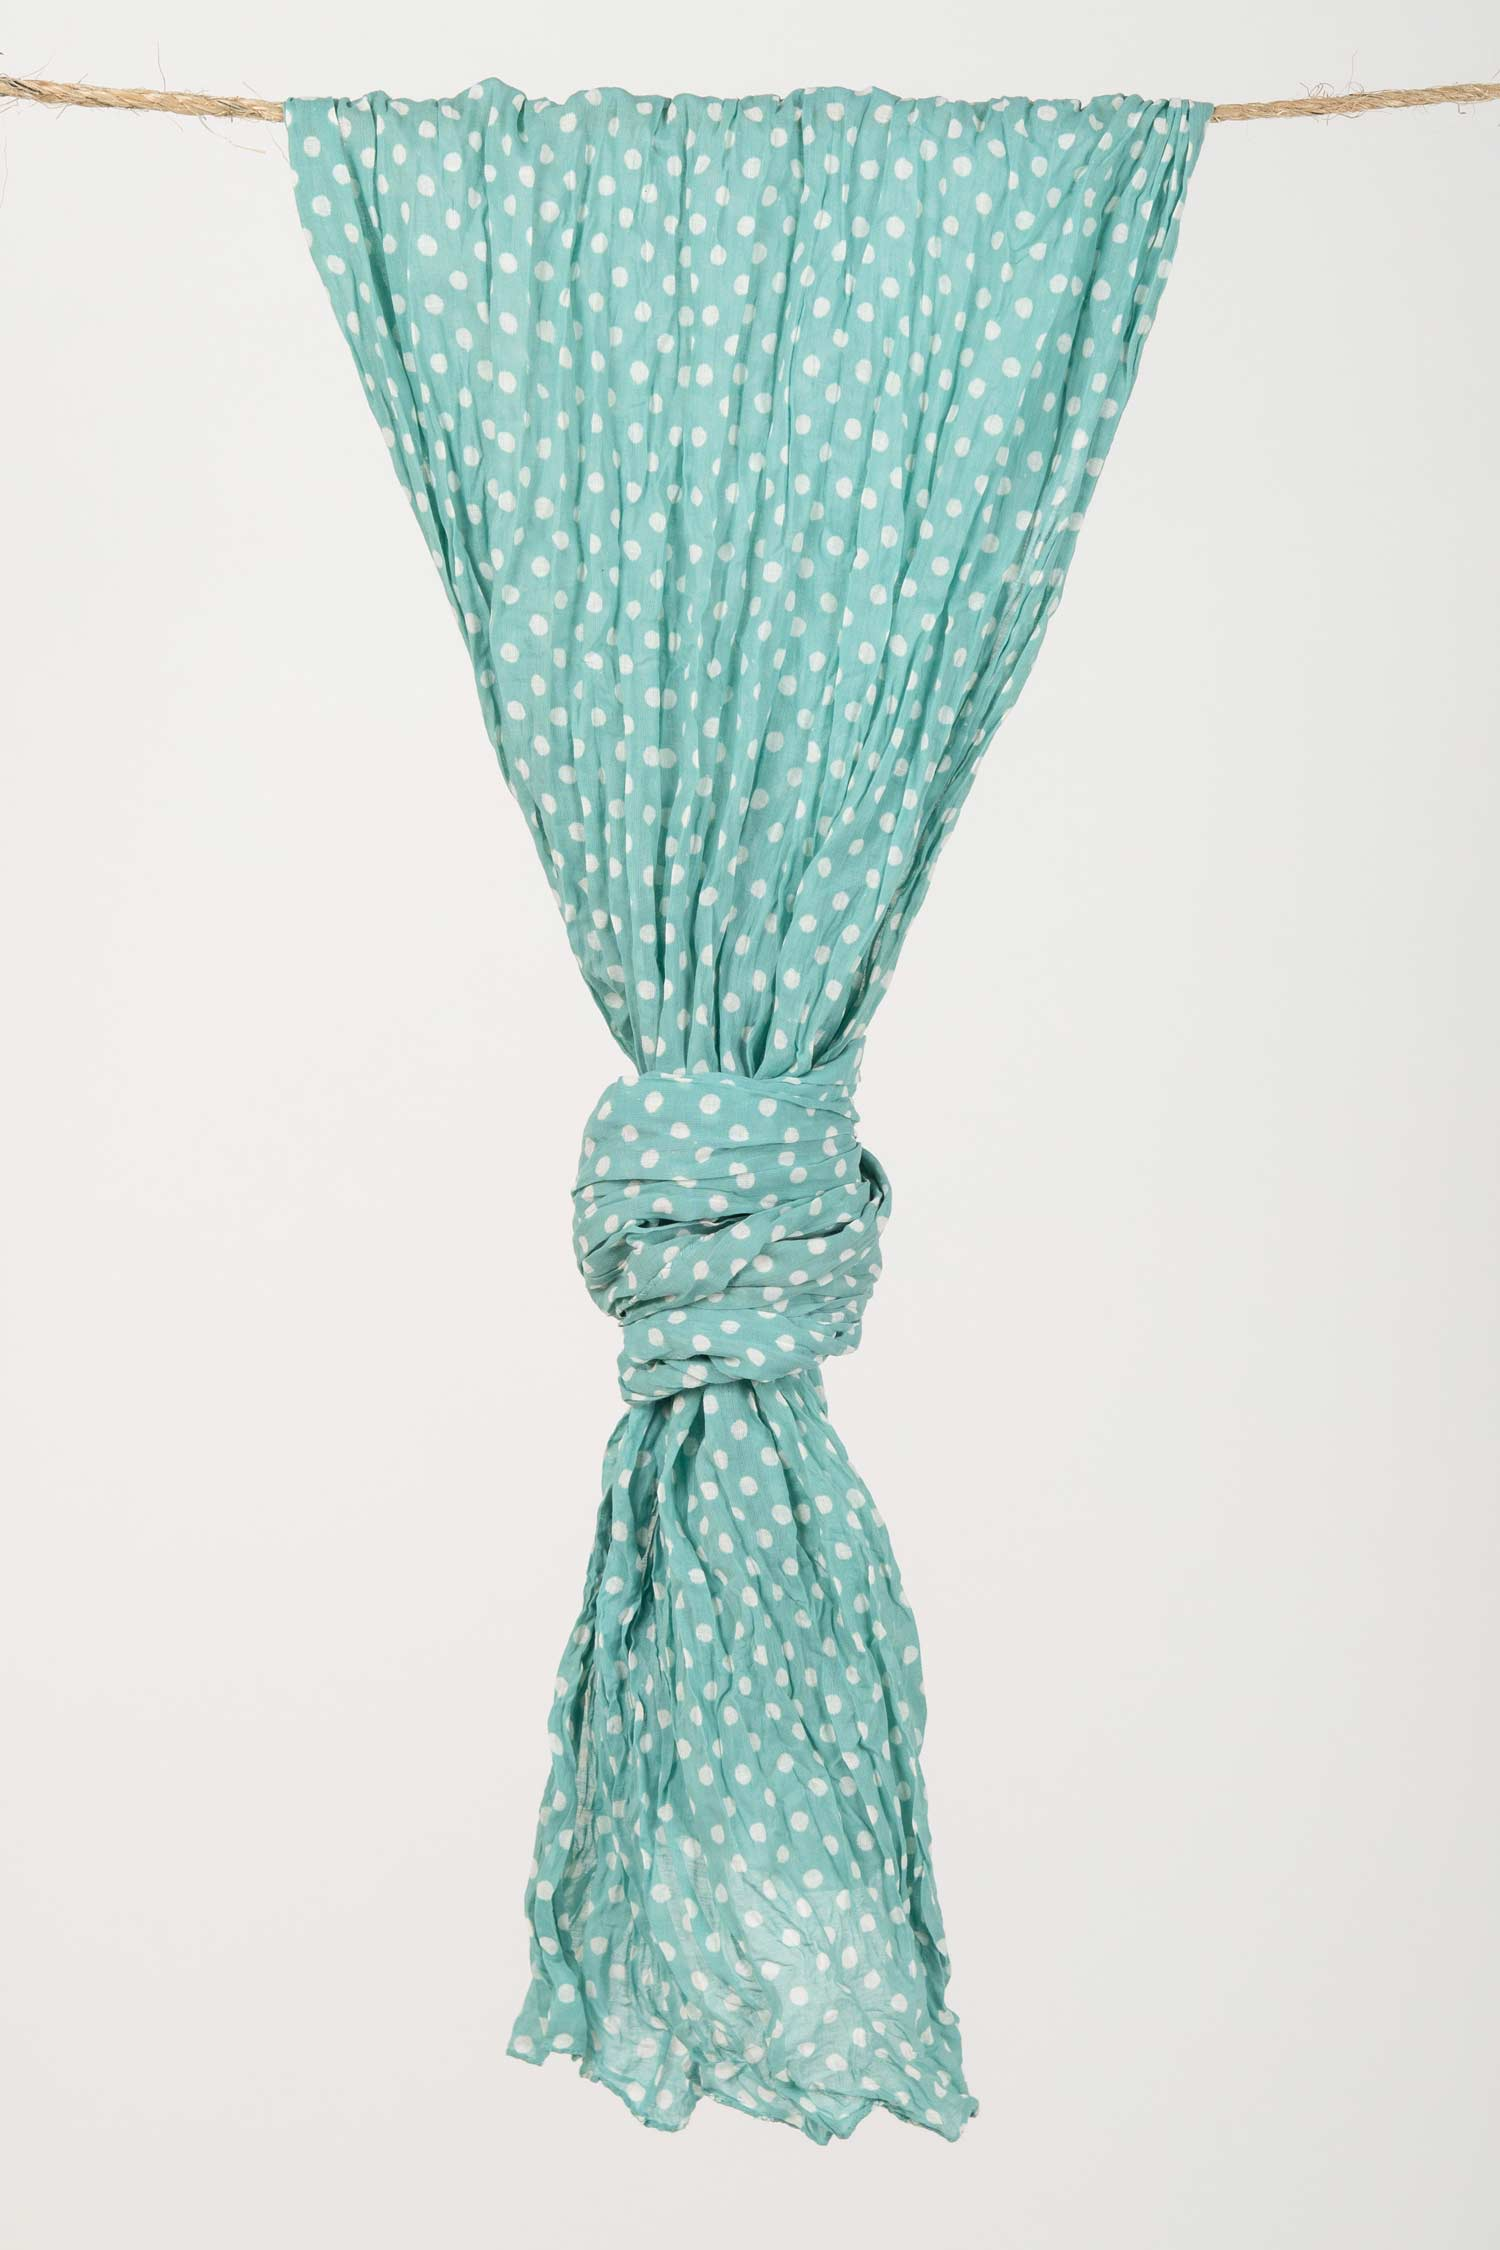 Womens Organic Cotton Scarf | Dabu Dot Block Print Scarves | Aqua Blue